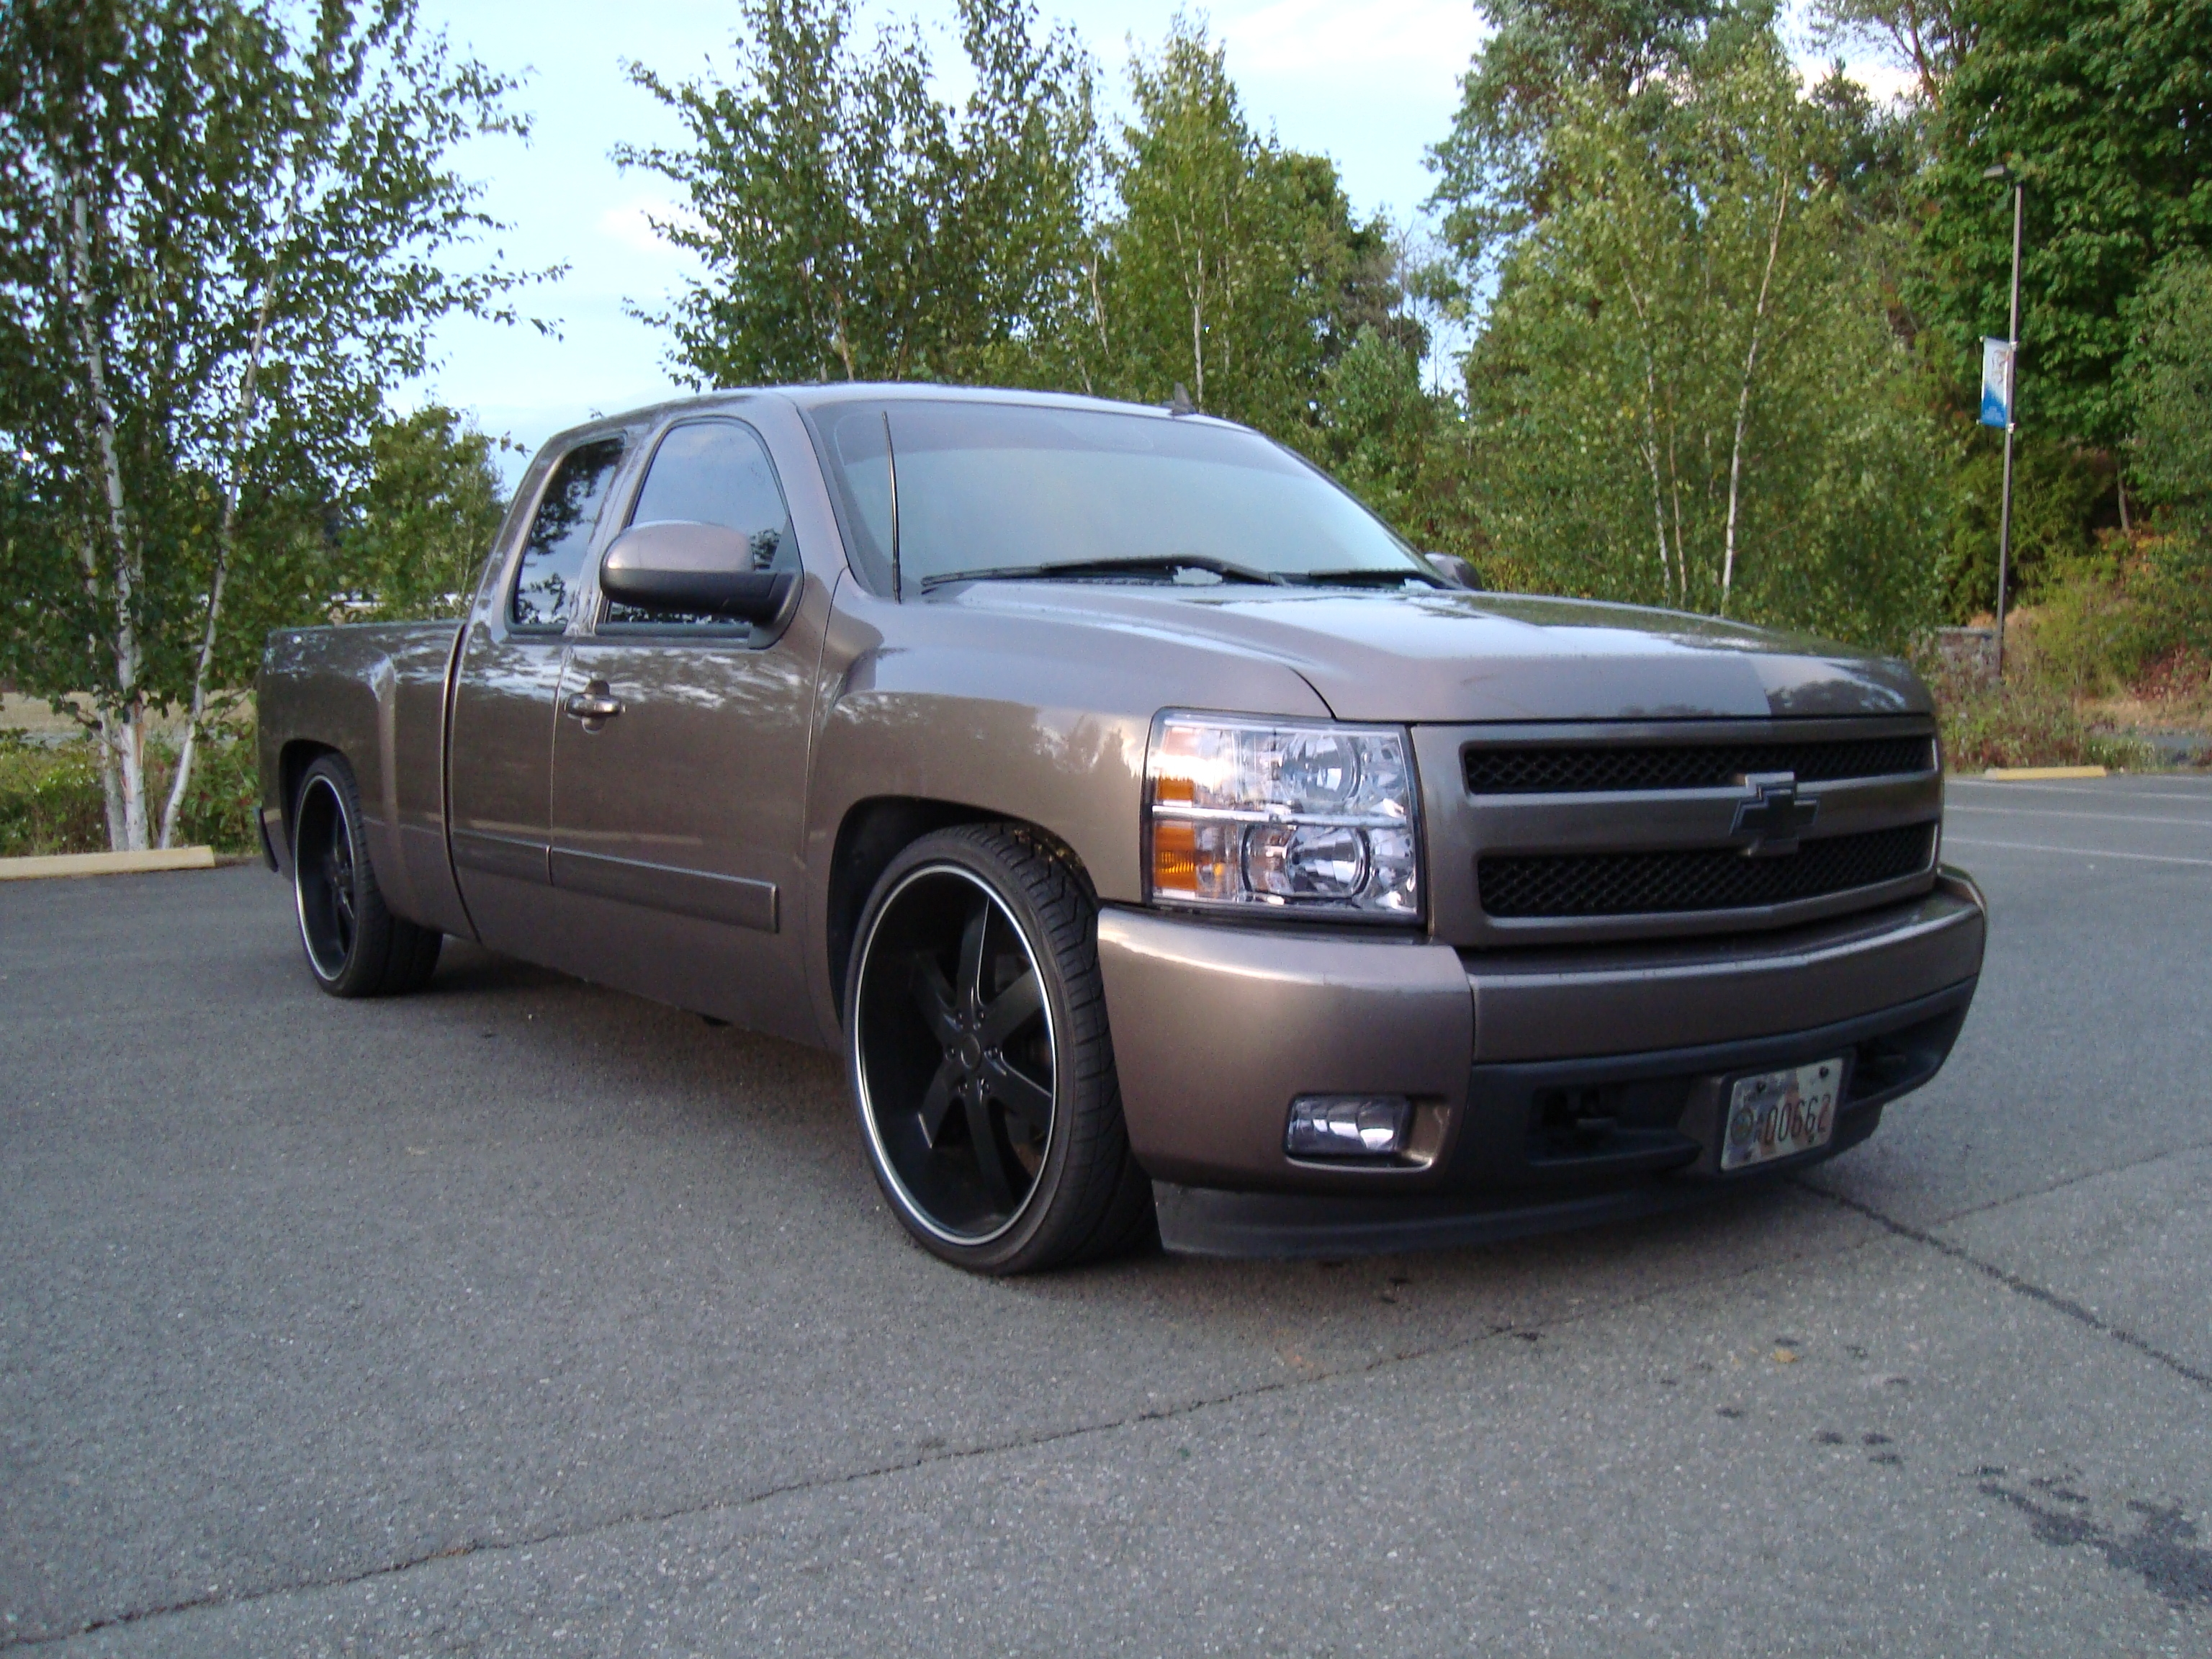 my2khoe 2008 chevrolet silverado 1500 extended cab specs photos modification info at cardomain. Black Bedroom Furniture Sets. Home Design Ideas